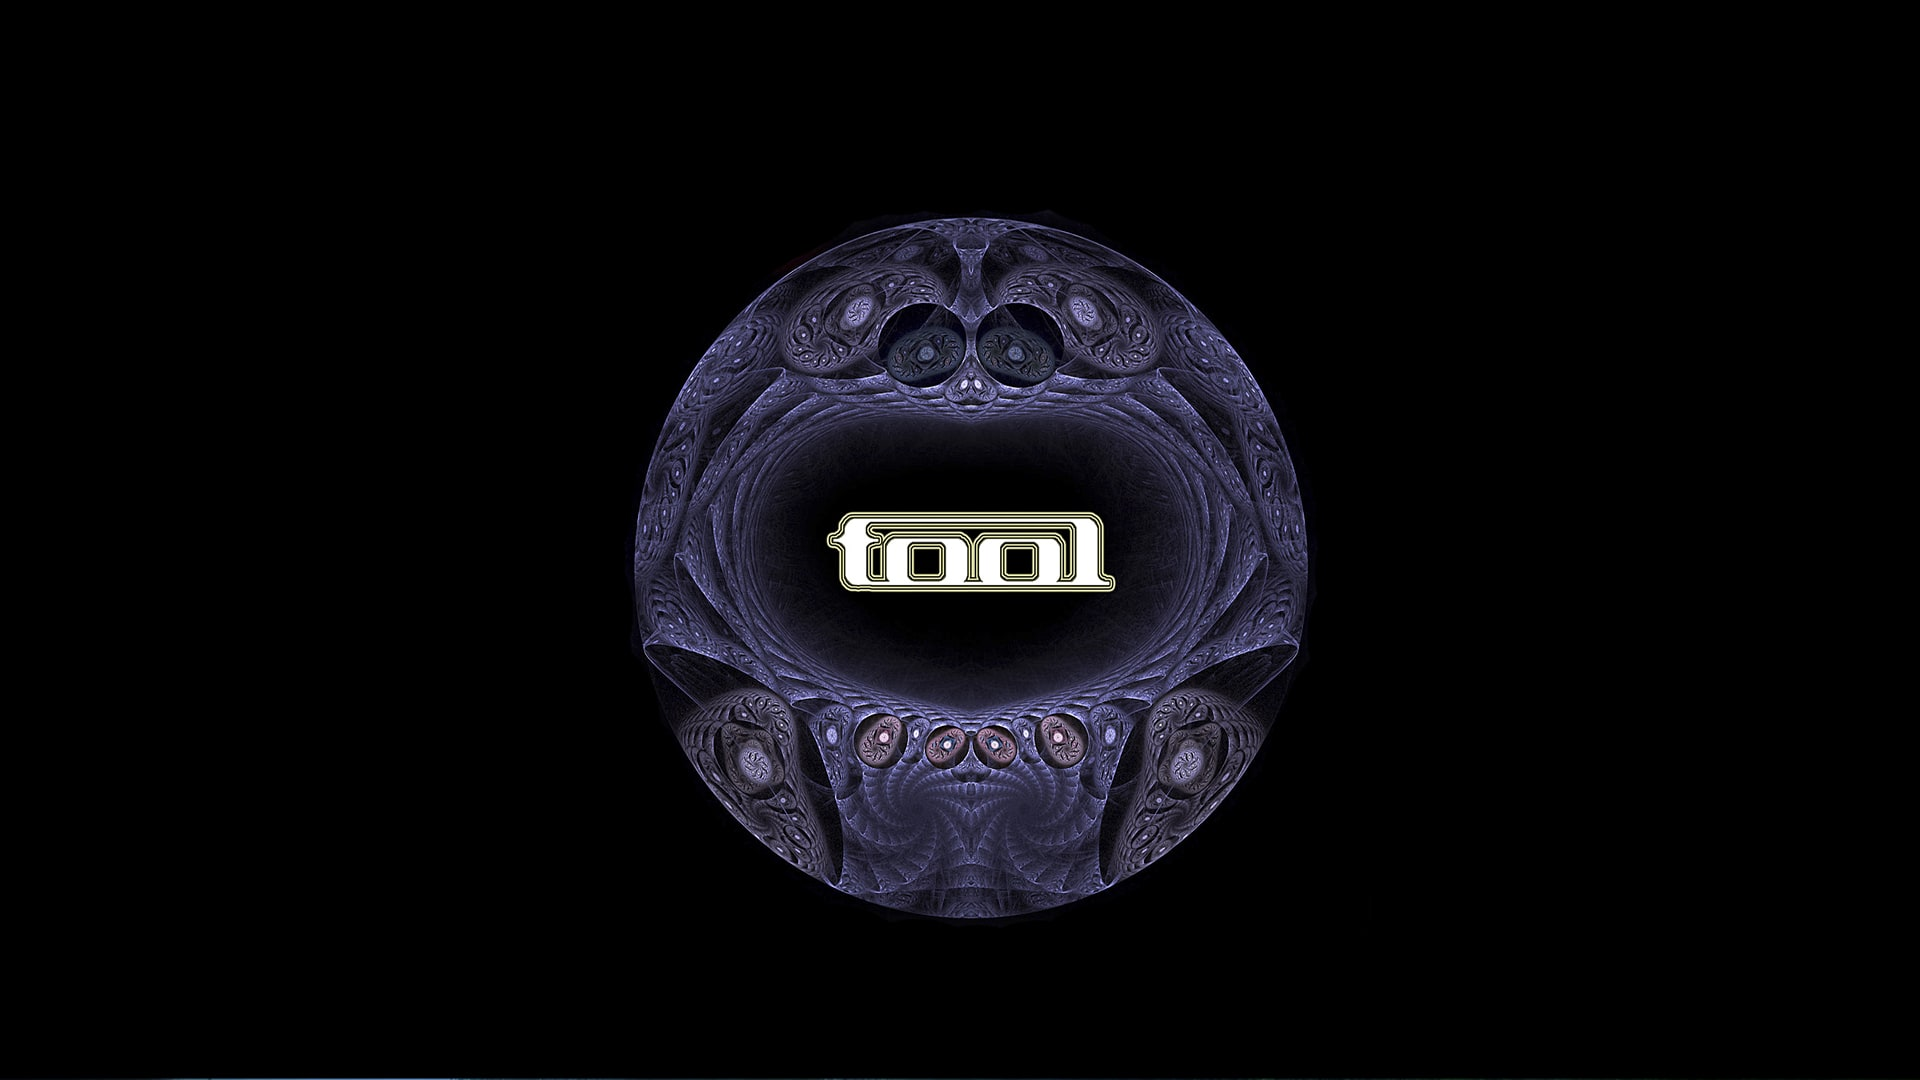 Tool Wallpapers hd